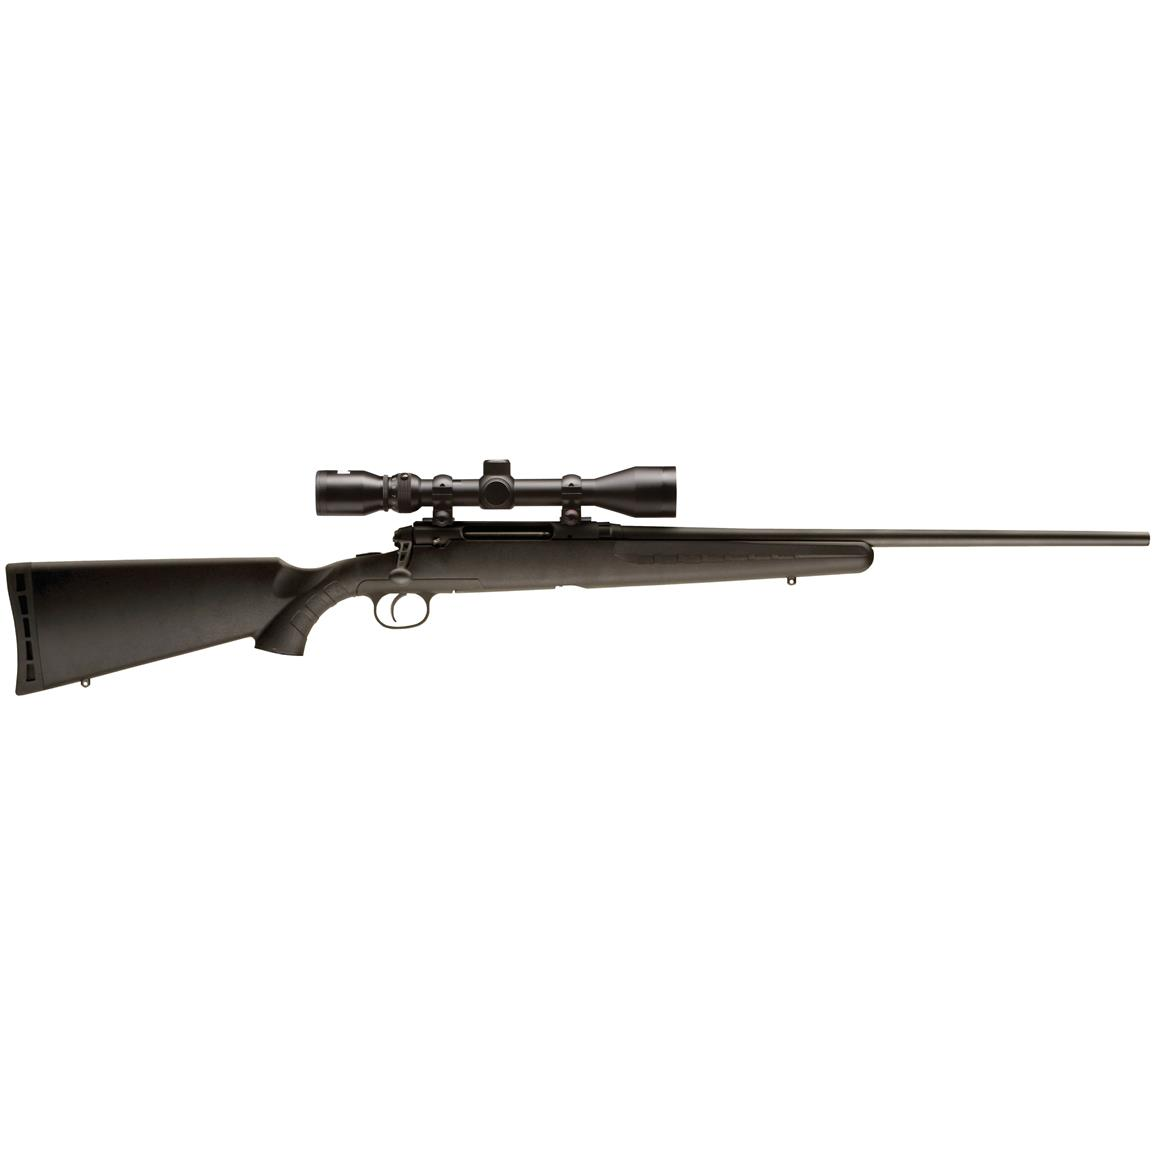 "Savage Axis XP, Bolt Action, .308 Winchester, 22"" Barrel, 3-9x40mm Scope, 3+1 Rounds"